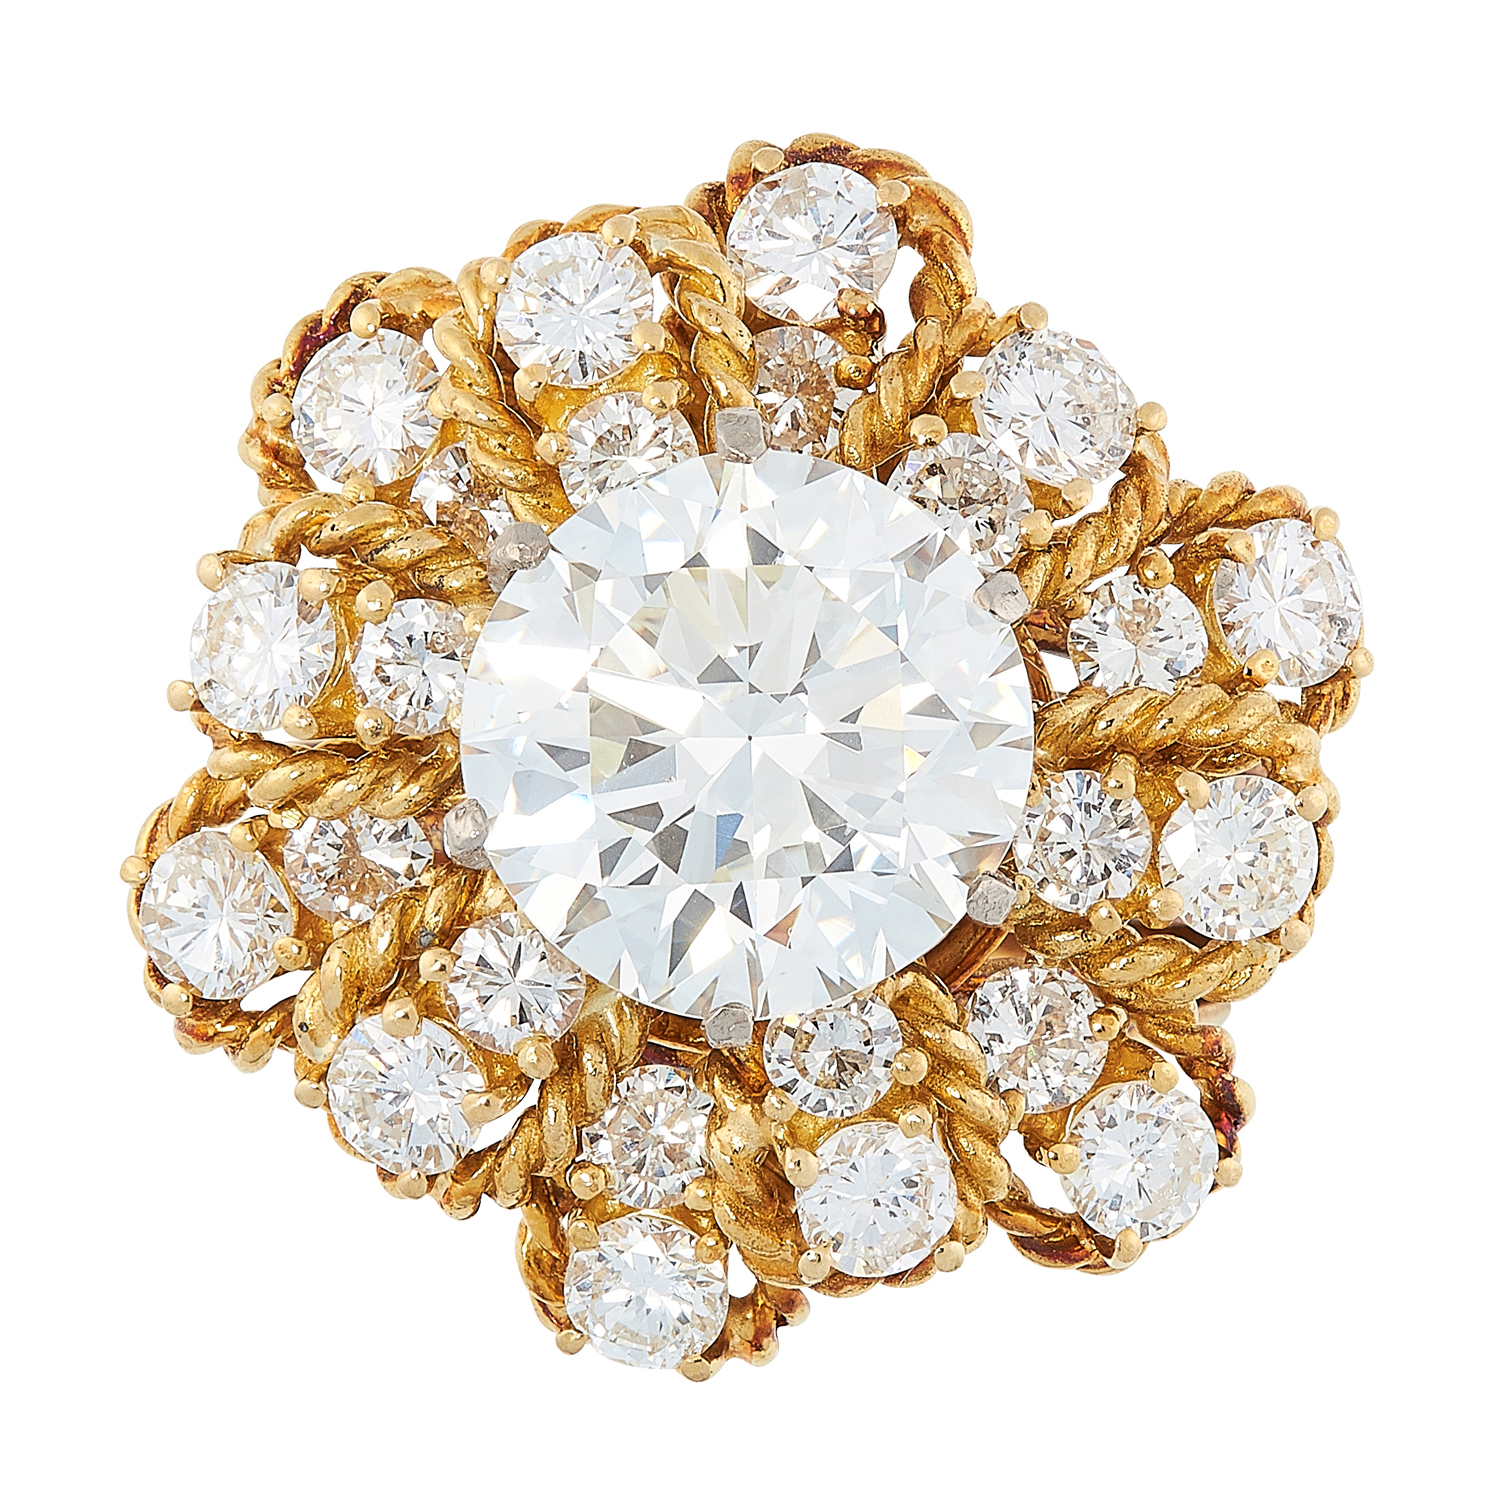 A 4.76 CARAT DIAMOND RING, BEN ROSENFELD 1964 in 18ct yellow gold, set with a central round cut